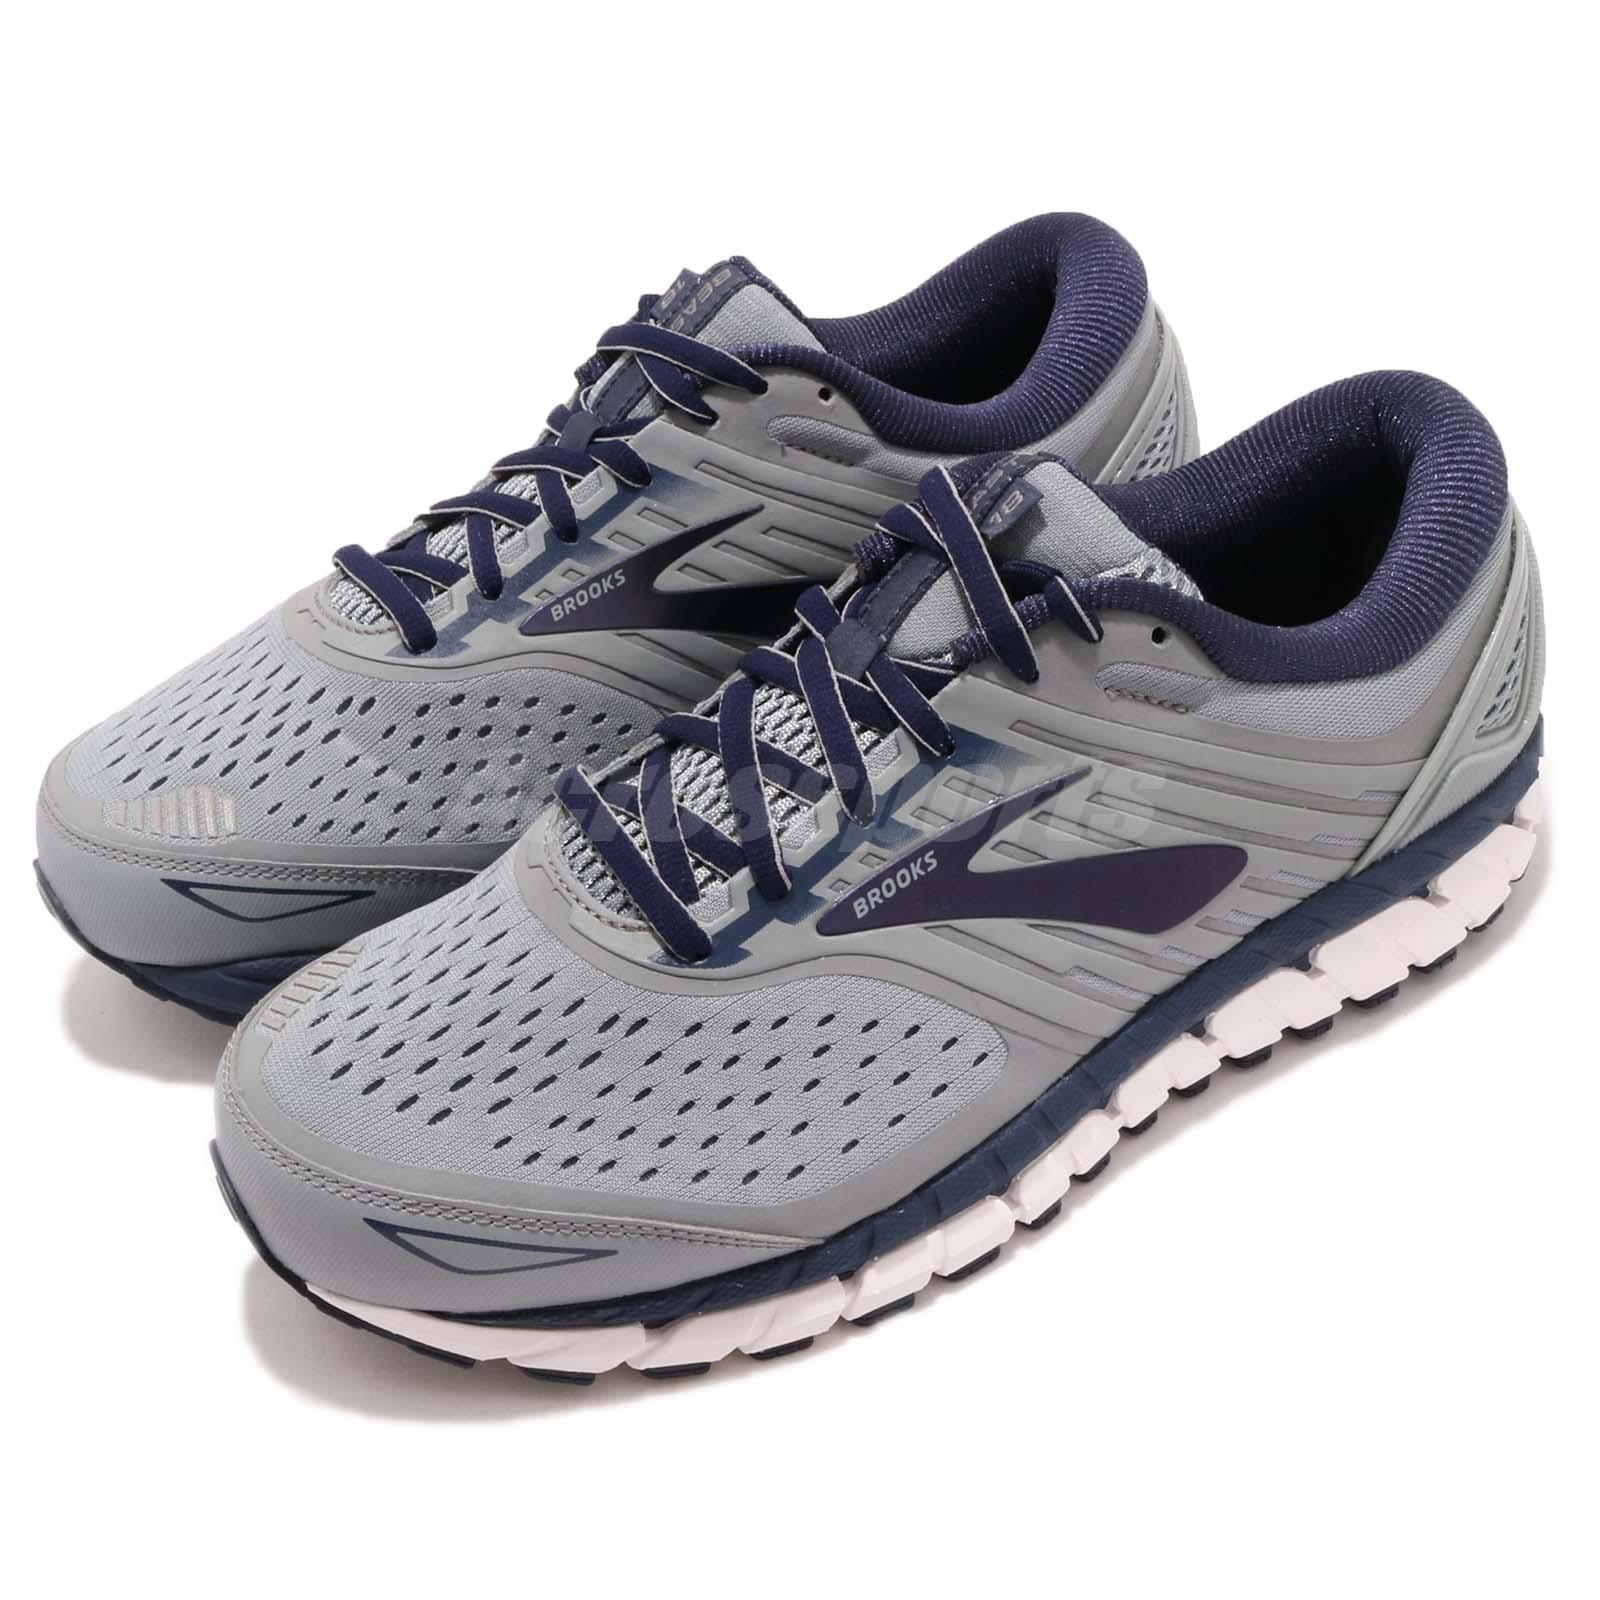 3f66c449b9a Details about Brooks Beast 18 4E Extra Wide Grey Navy White Men Running  Shoes 110282 4E